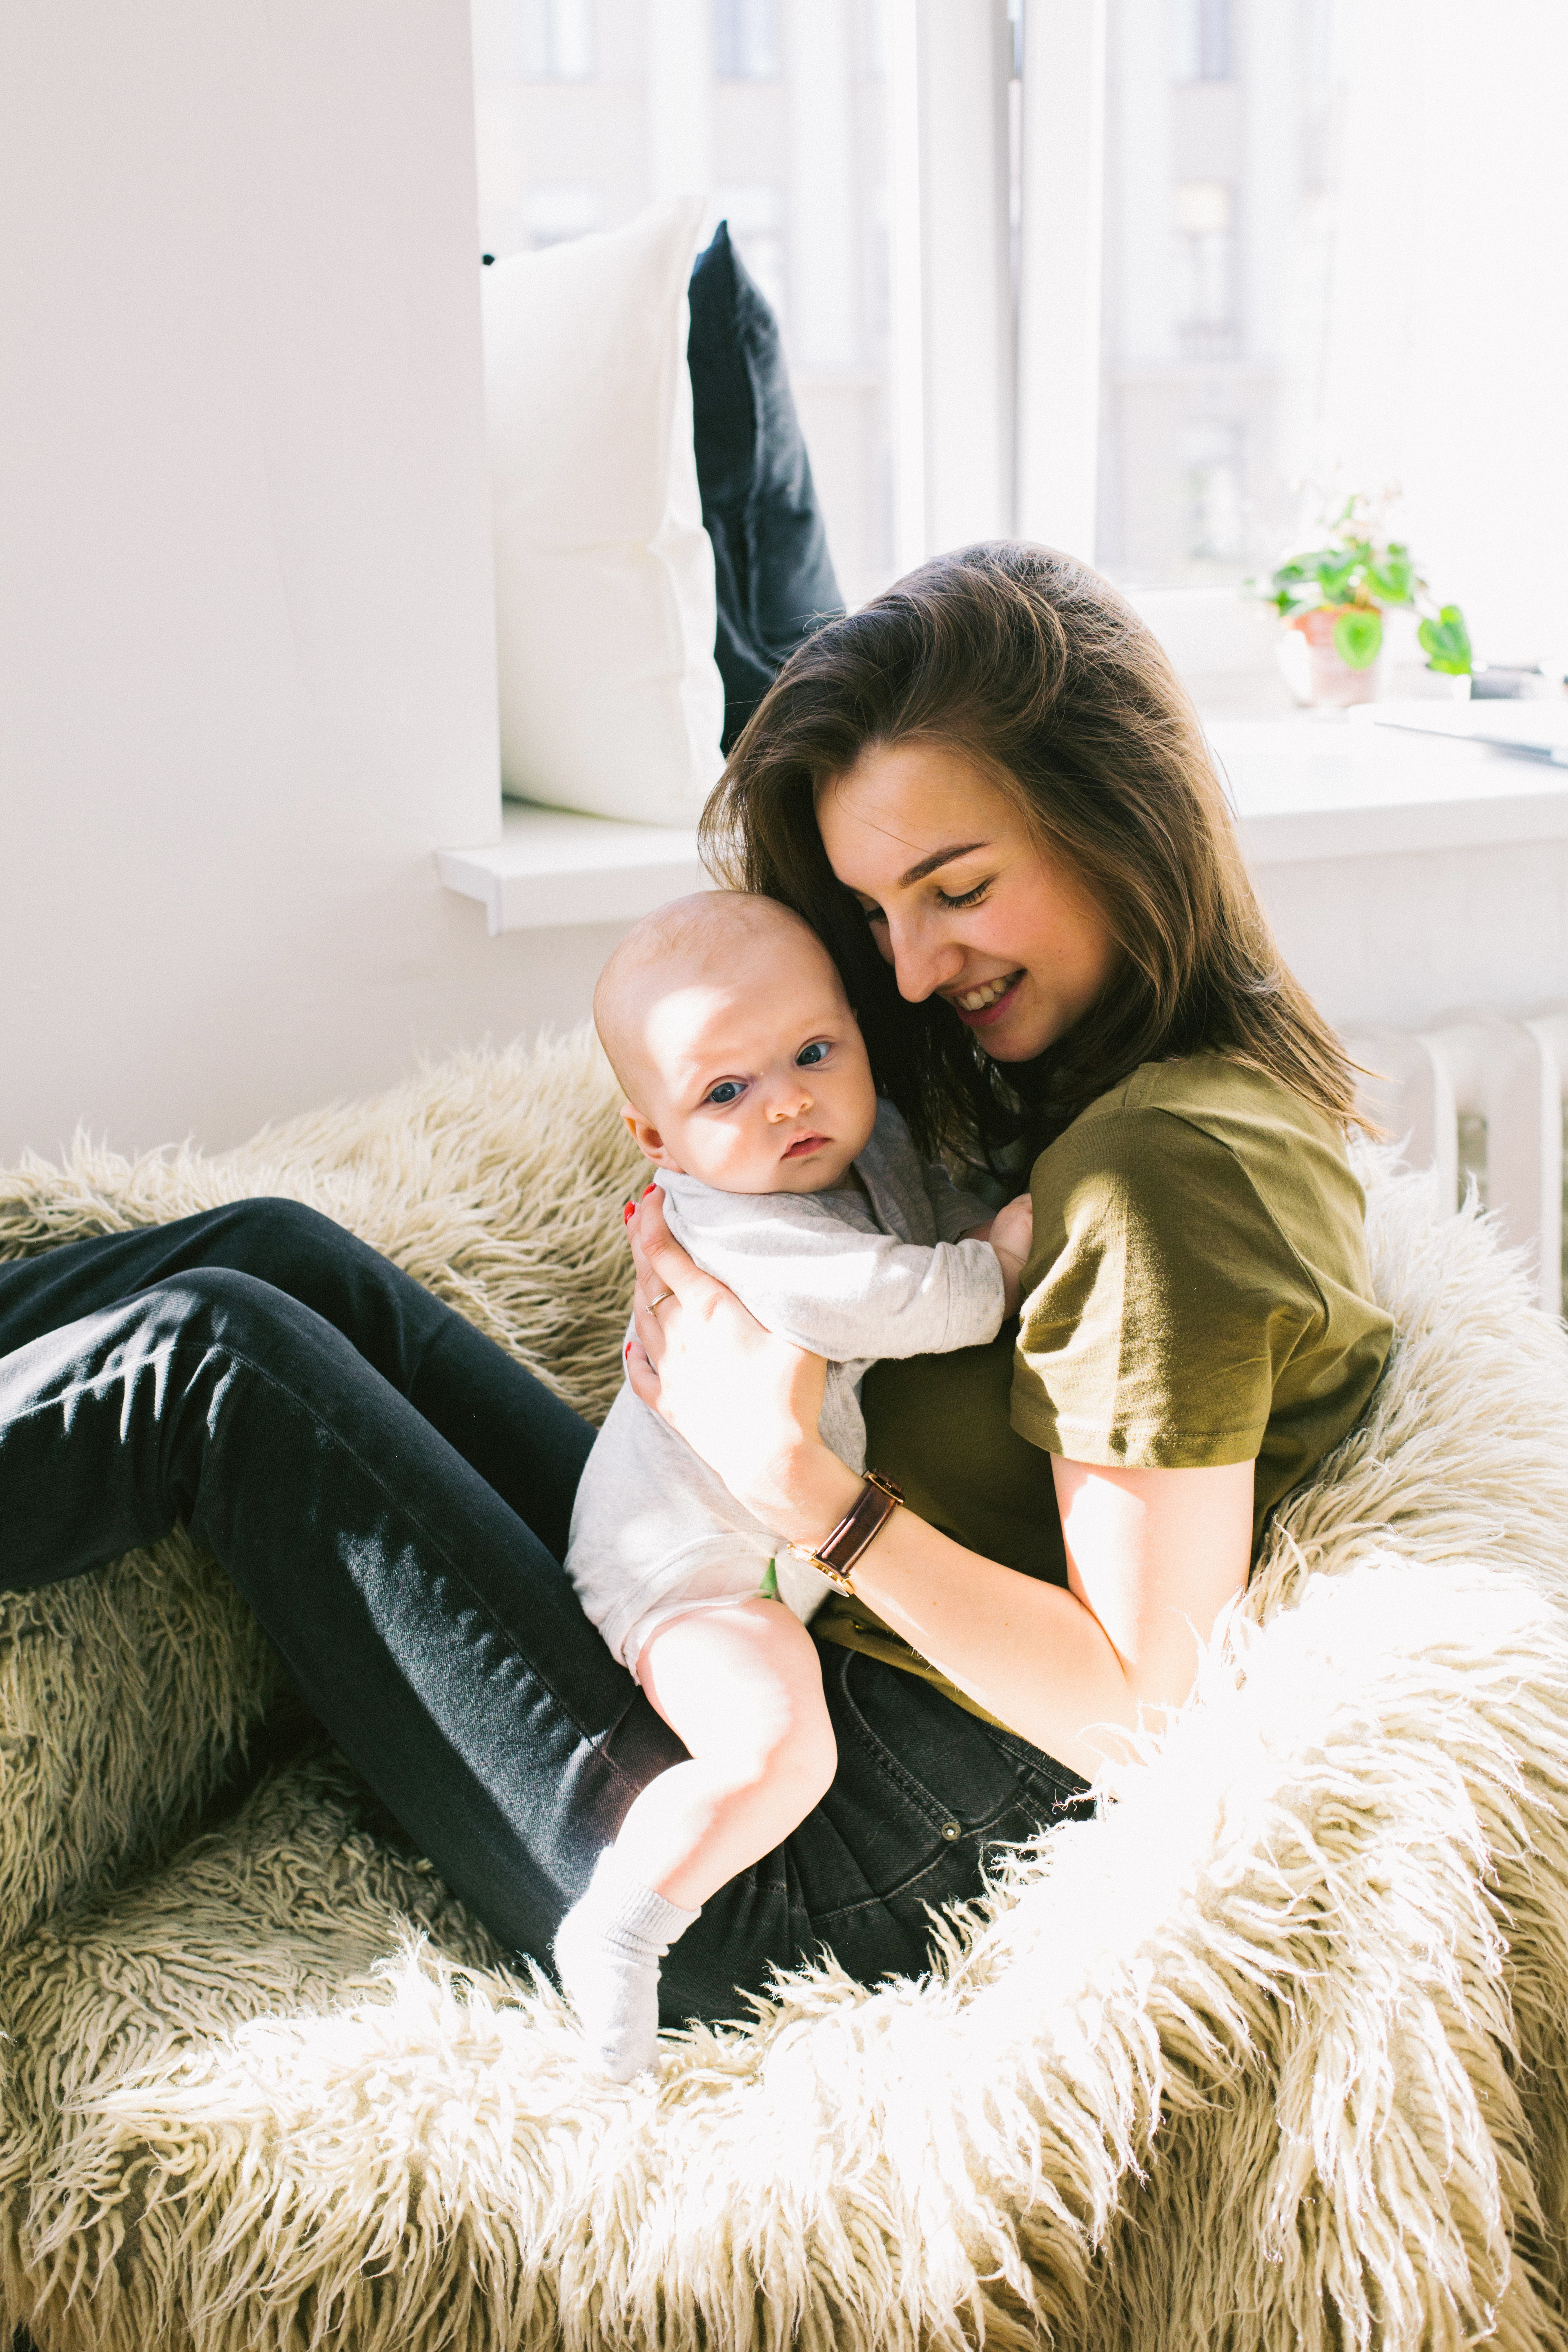 Woman in green shirt holding baby while sitting photo